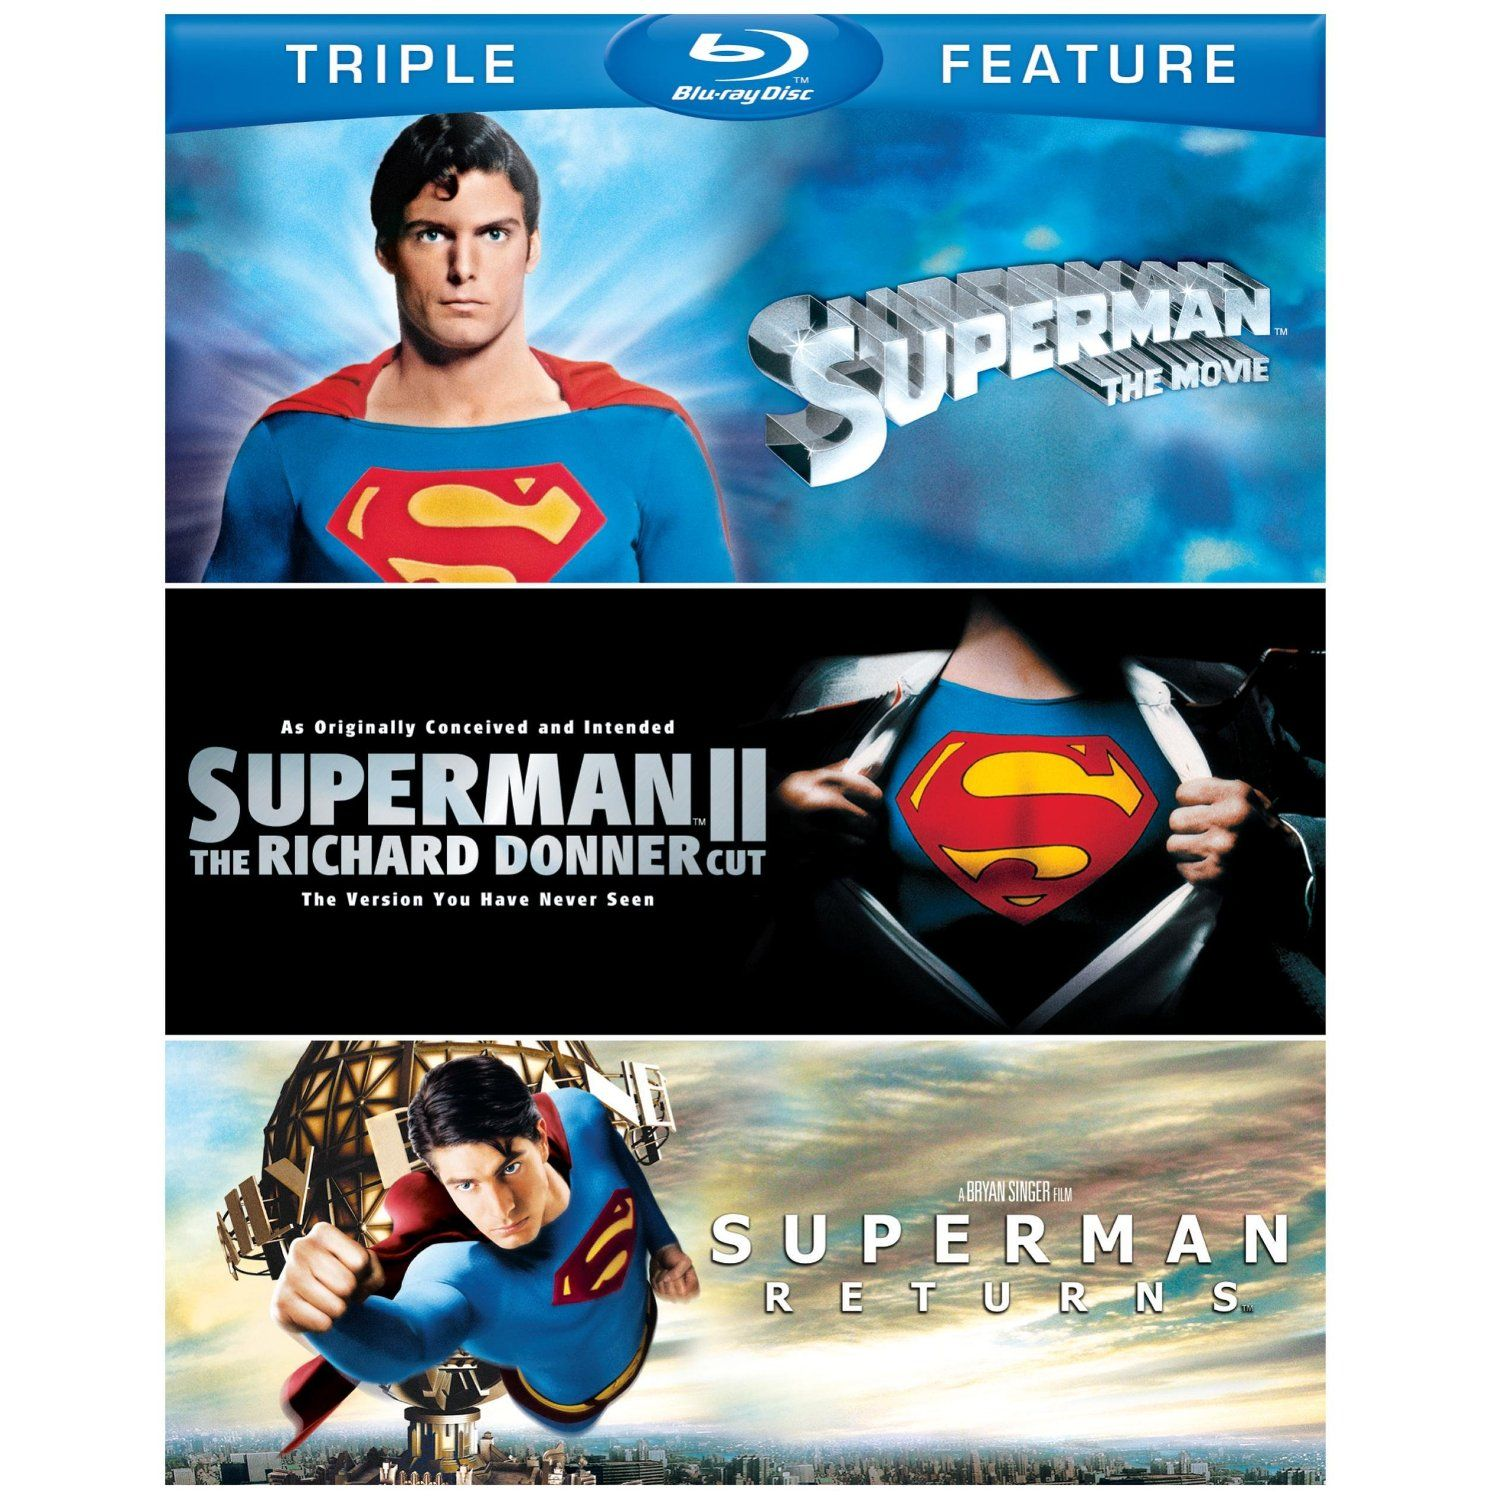 Triple Feature Dvd Opening 9 $9.99 Triple Feature Blu-rays